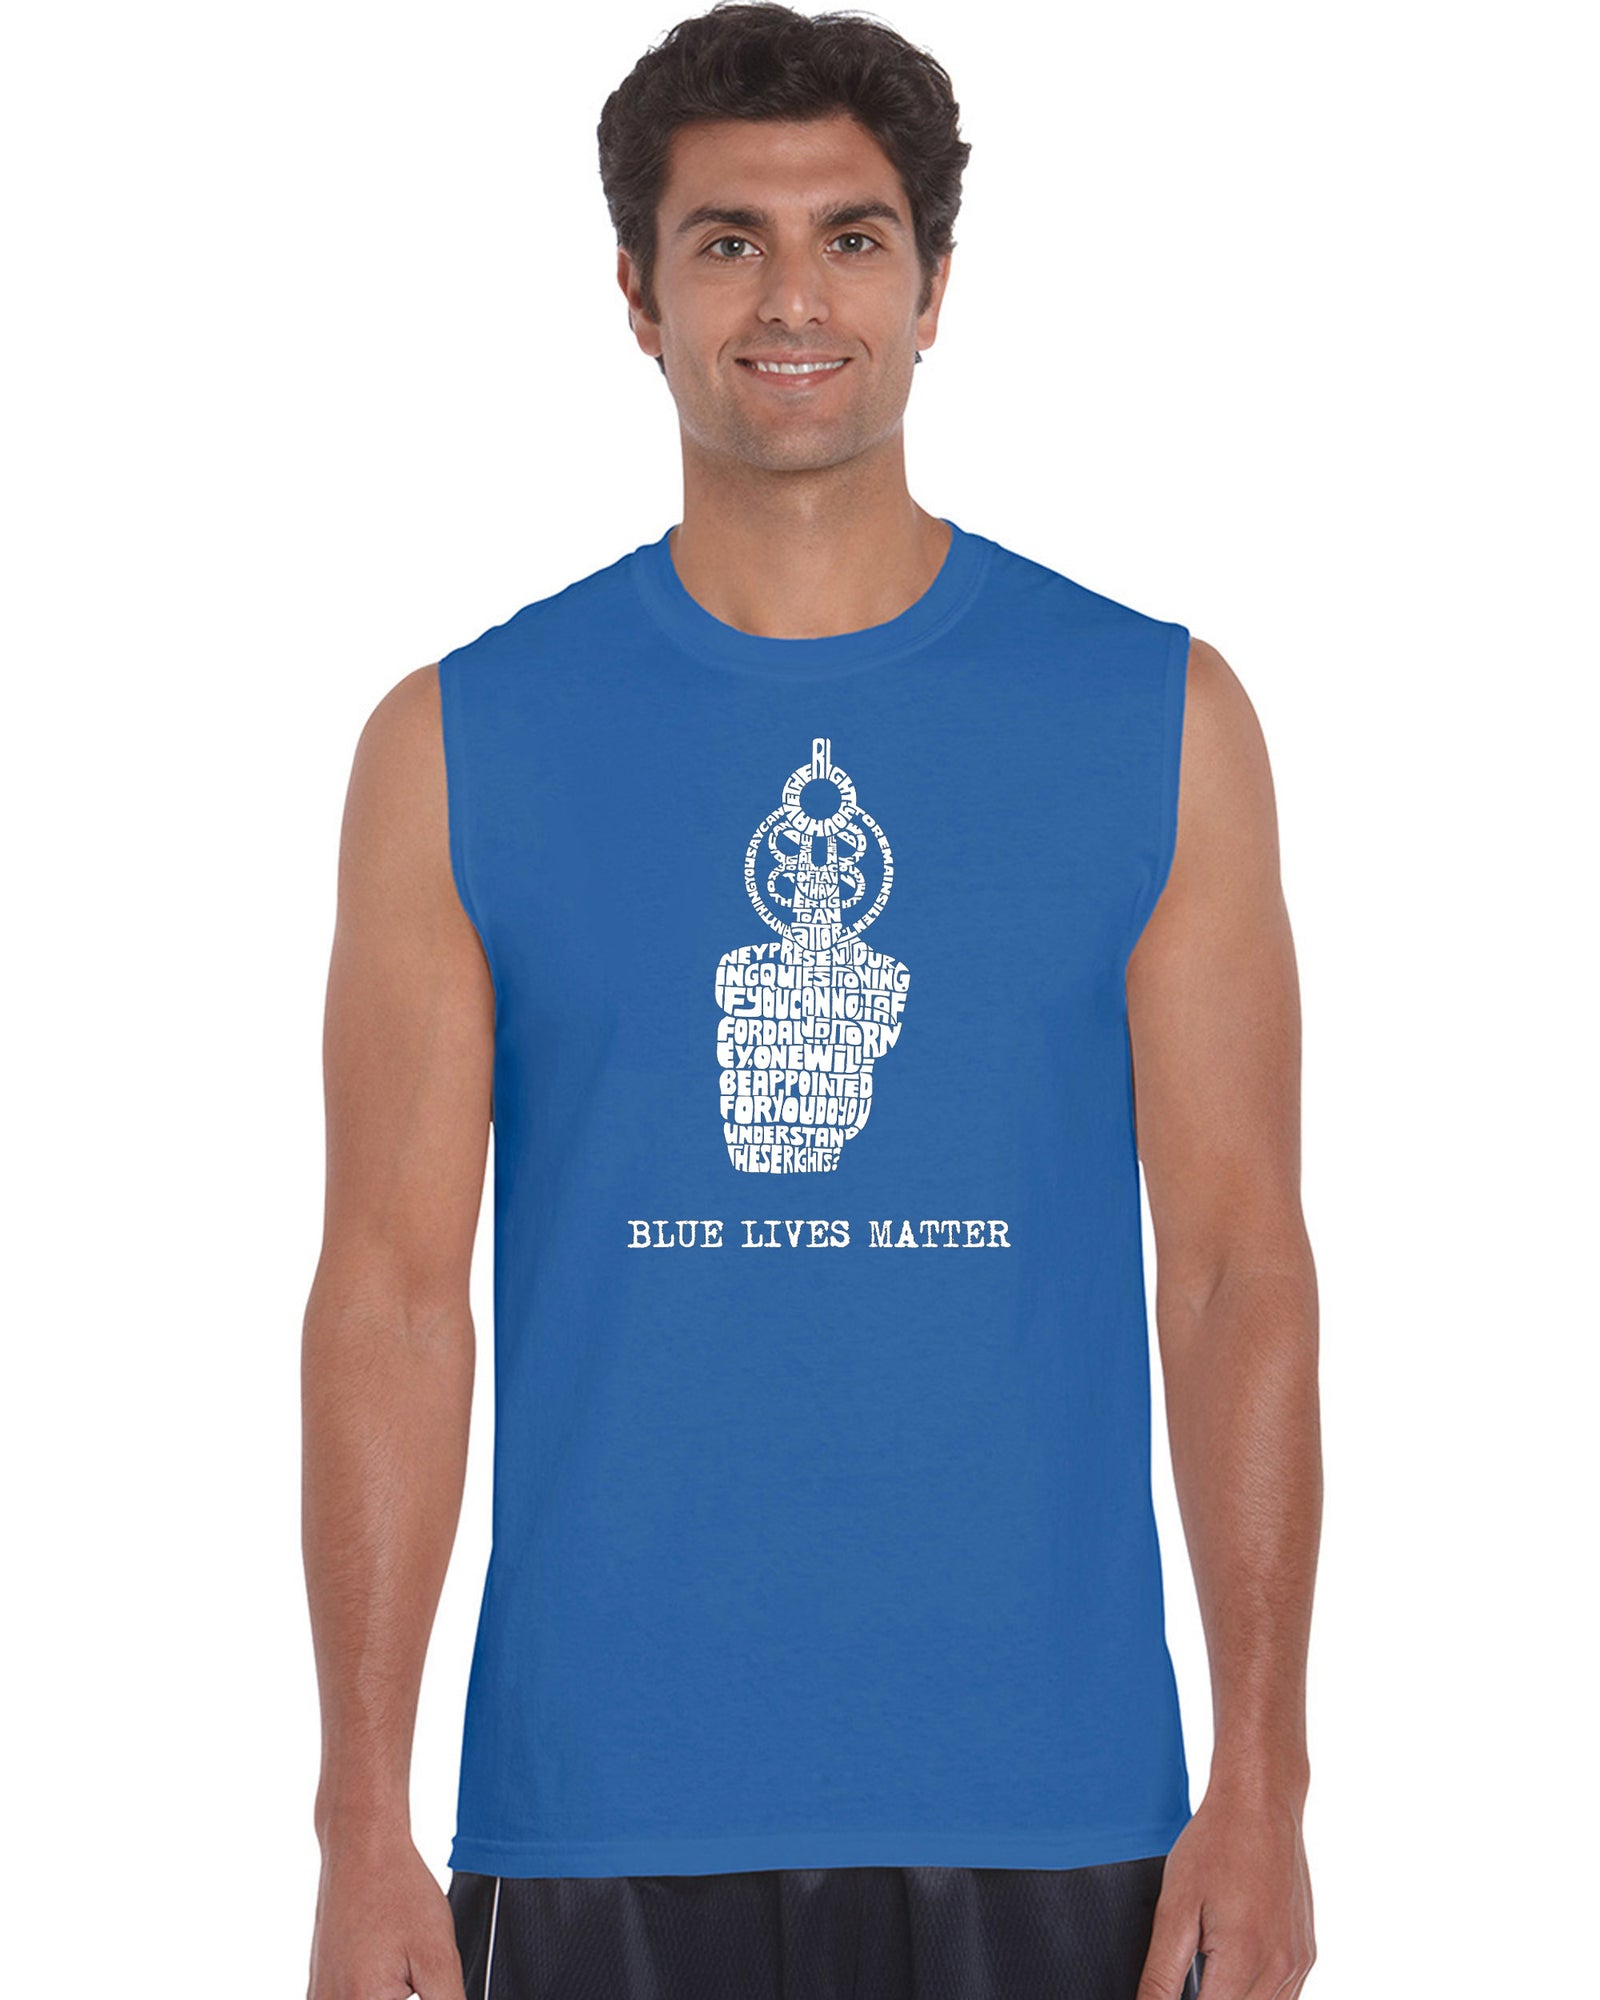 Men's Sleeveless T-shirt - Blue Lives Matter